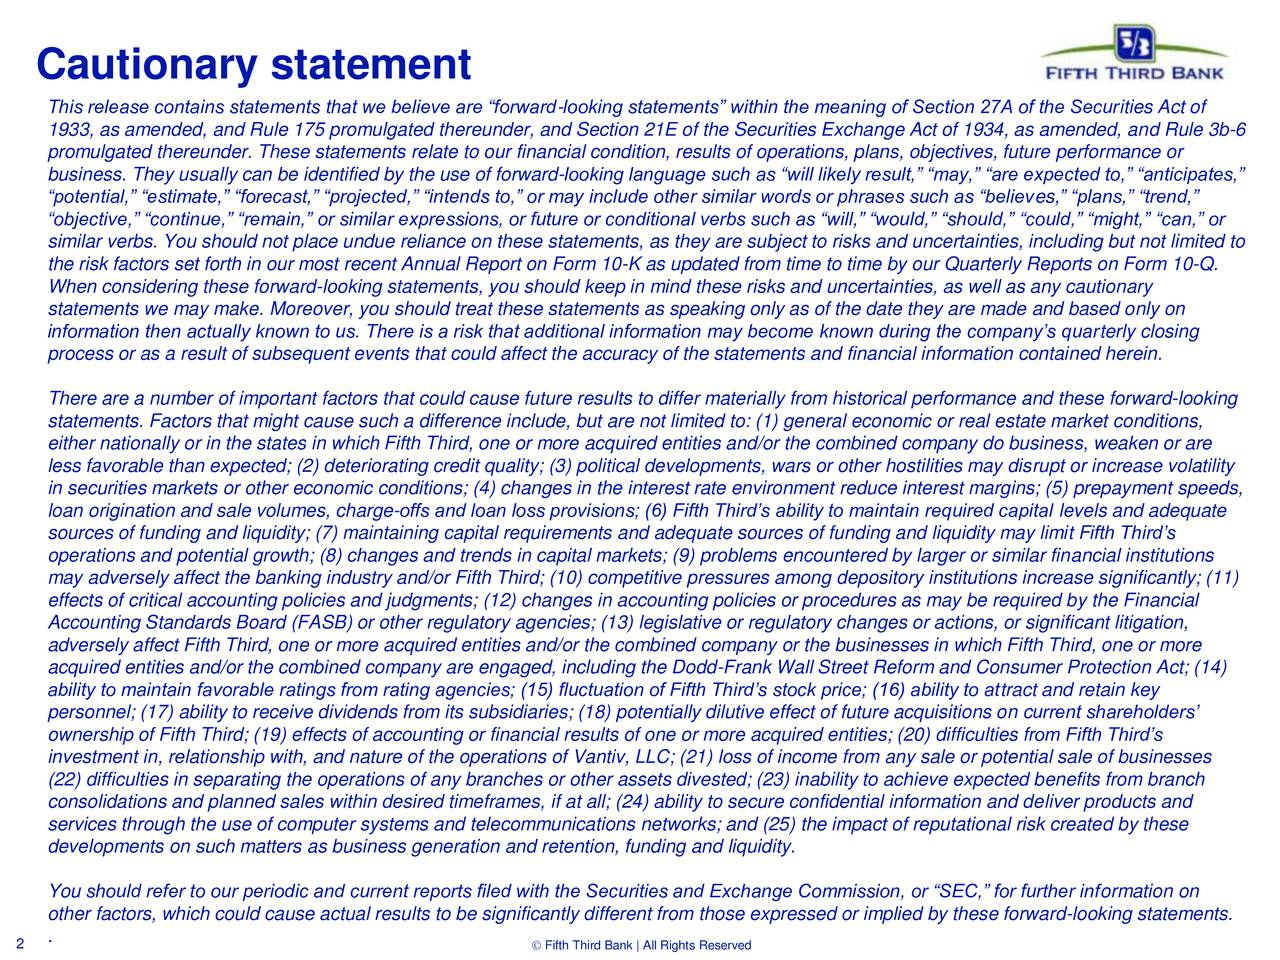 This release contains statements that we believe are forward-looking statements within the meaning of Section 27A of the Securities Act of 1933, as amended, and Rule 175 promulgated thereunder, and Section 21E of the Securities Exchange Act of 1934, as amended, and Rule 3b-6 promulgated thereunder. These statements relate to our financial condition, results of operations, plans, objectives, future performance or business. They usually can be identified by the use of forward-looking language such as will likely result, may, are expected to, anticipates, potential, estimate, forecast, projected, intends to, or may include other similar words or phrases such as believes, plans, trend, objective, continue, remain, or similar expressions, or future or conditional verbs such as will, would, should, could, might, can, or similar verbs. You should not place undue reliance on these statements, as they are subject to risks and uncertainties, including but not limited to the risk factors set forth in our most recent Annual Report on Form 10-K as updated from time to time by our Quarterly Reports on Form 10-Q. When considering these forward-looking statements, you should keep in mind these risks and uncertainties, as well as any cautionary statements we may make. Moreover, you should treat these statements as speaking only as of the date they are made and based only on information then actually known to us. There is a risk that additional information may become known during the companys quarterly closing process or as a result of subsequent events that could affect the accuracy of the statements and financial information contained herein. There are a number of important factors that could cause future results to differ materially from historical performance and these forward-looking statements. Factors that might cause such a difference include, but are not limited to: (1) general economic or real estate market conditions, either nationally or in the states in which Fifth Third